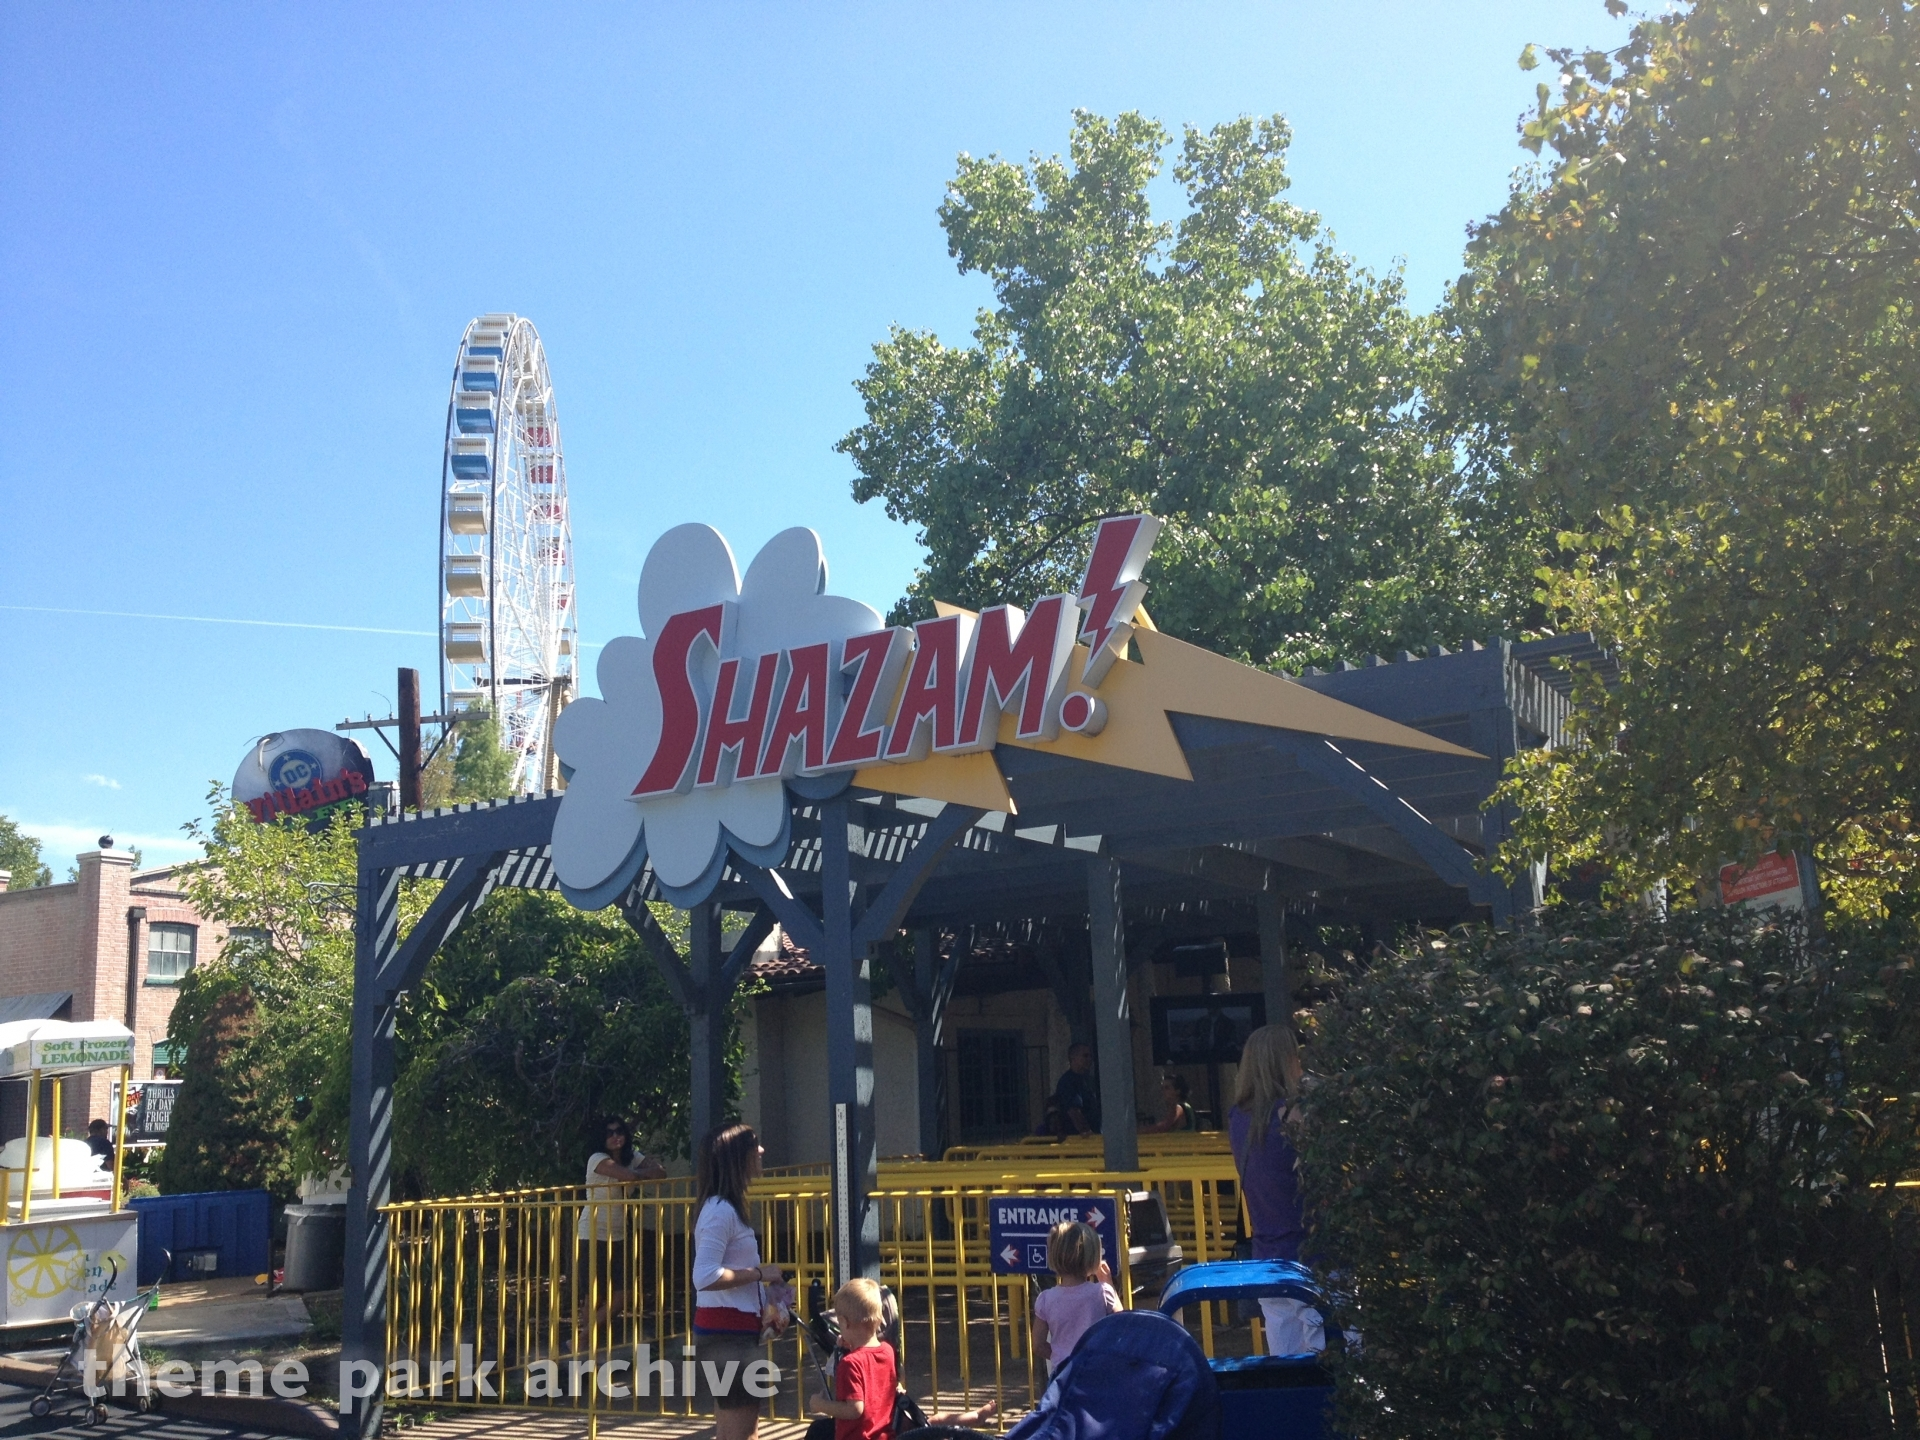 SHAZAM! at Six Flags St. Louis